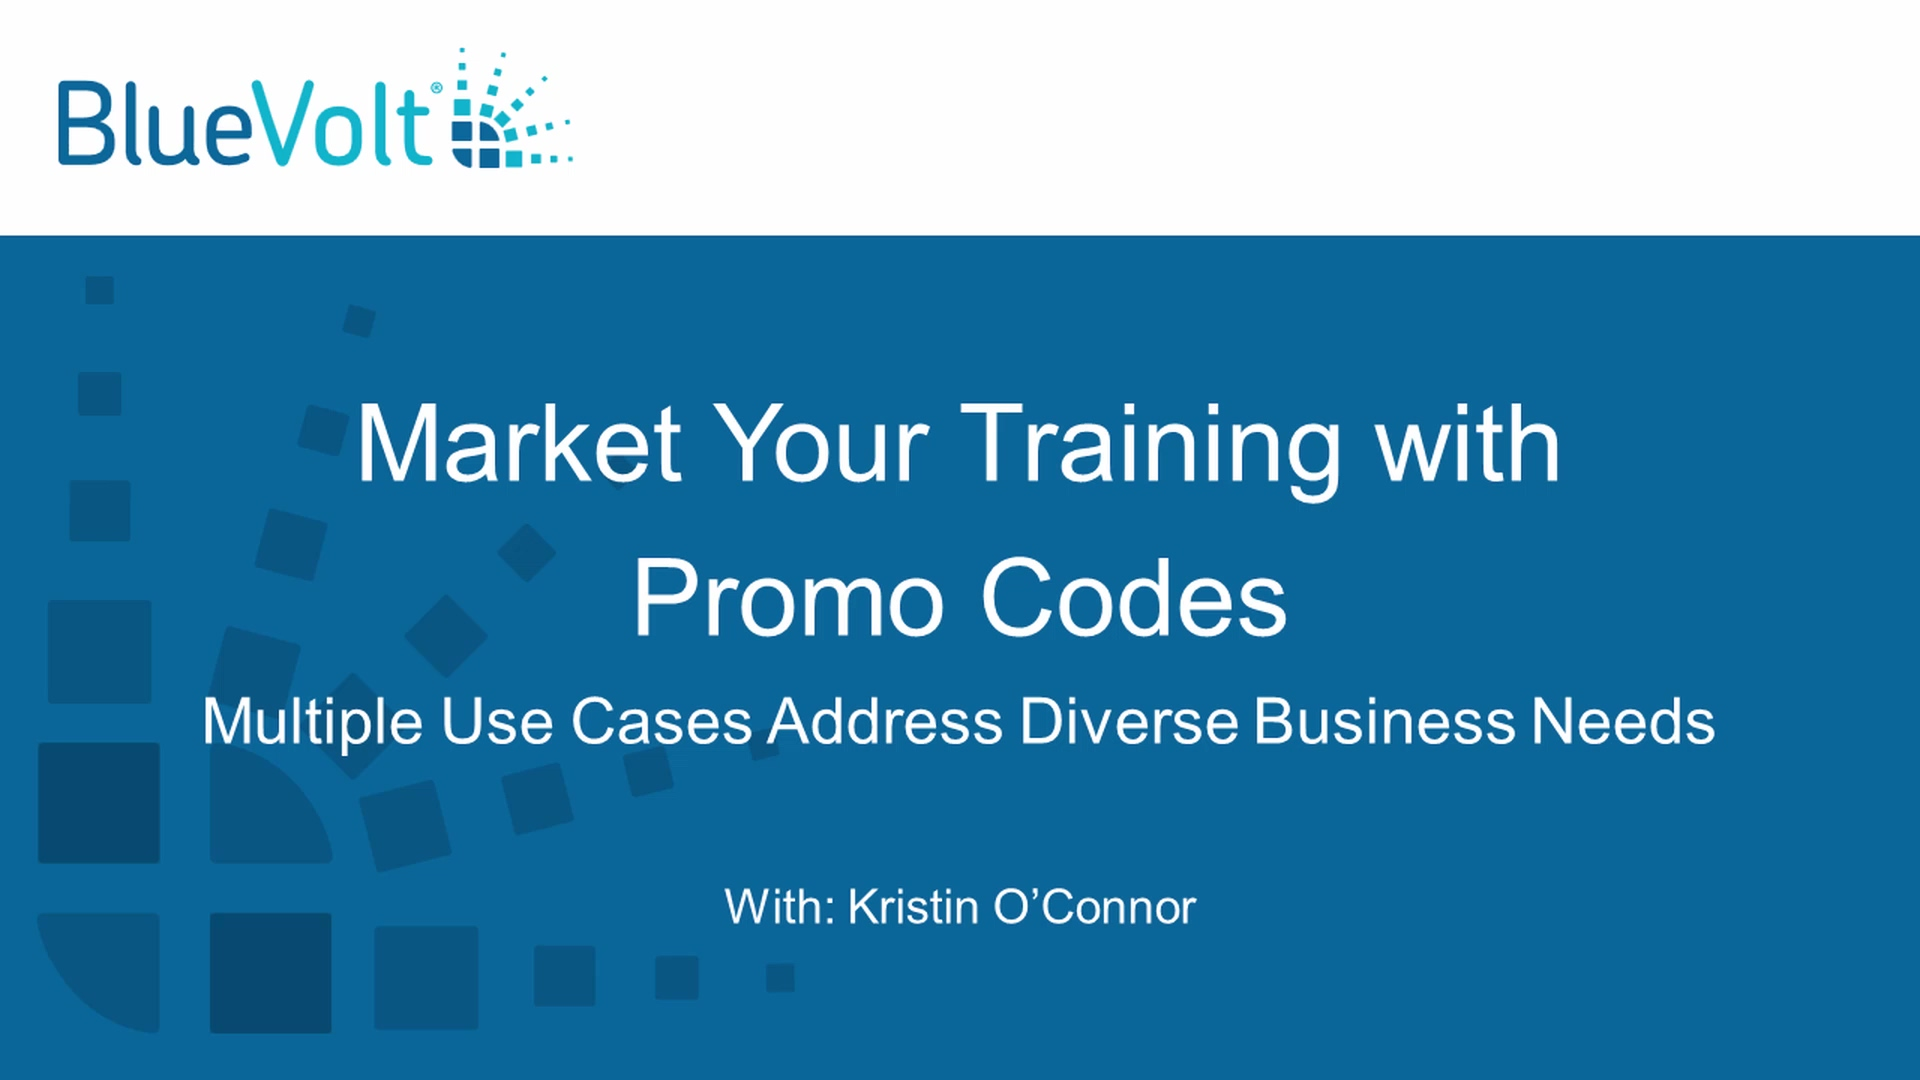 Marketing with Promo Codes 1920x1080-